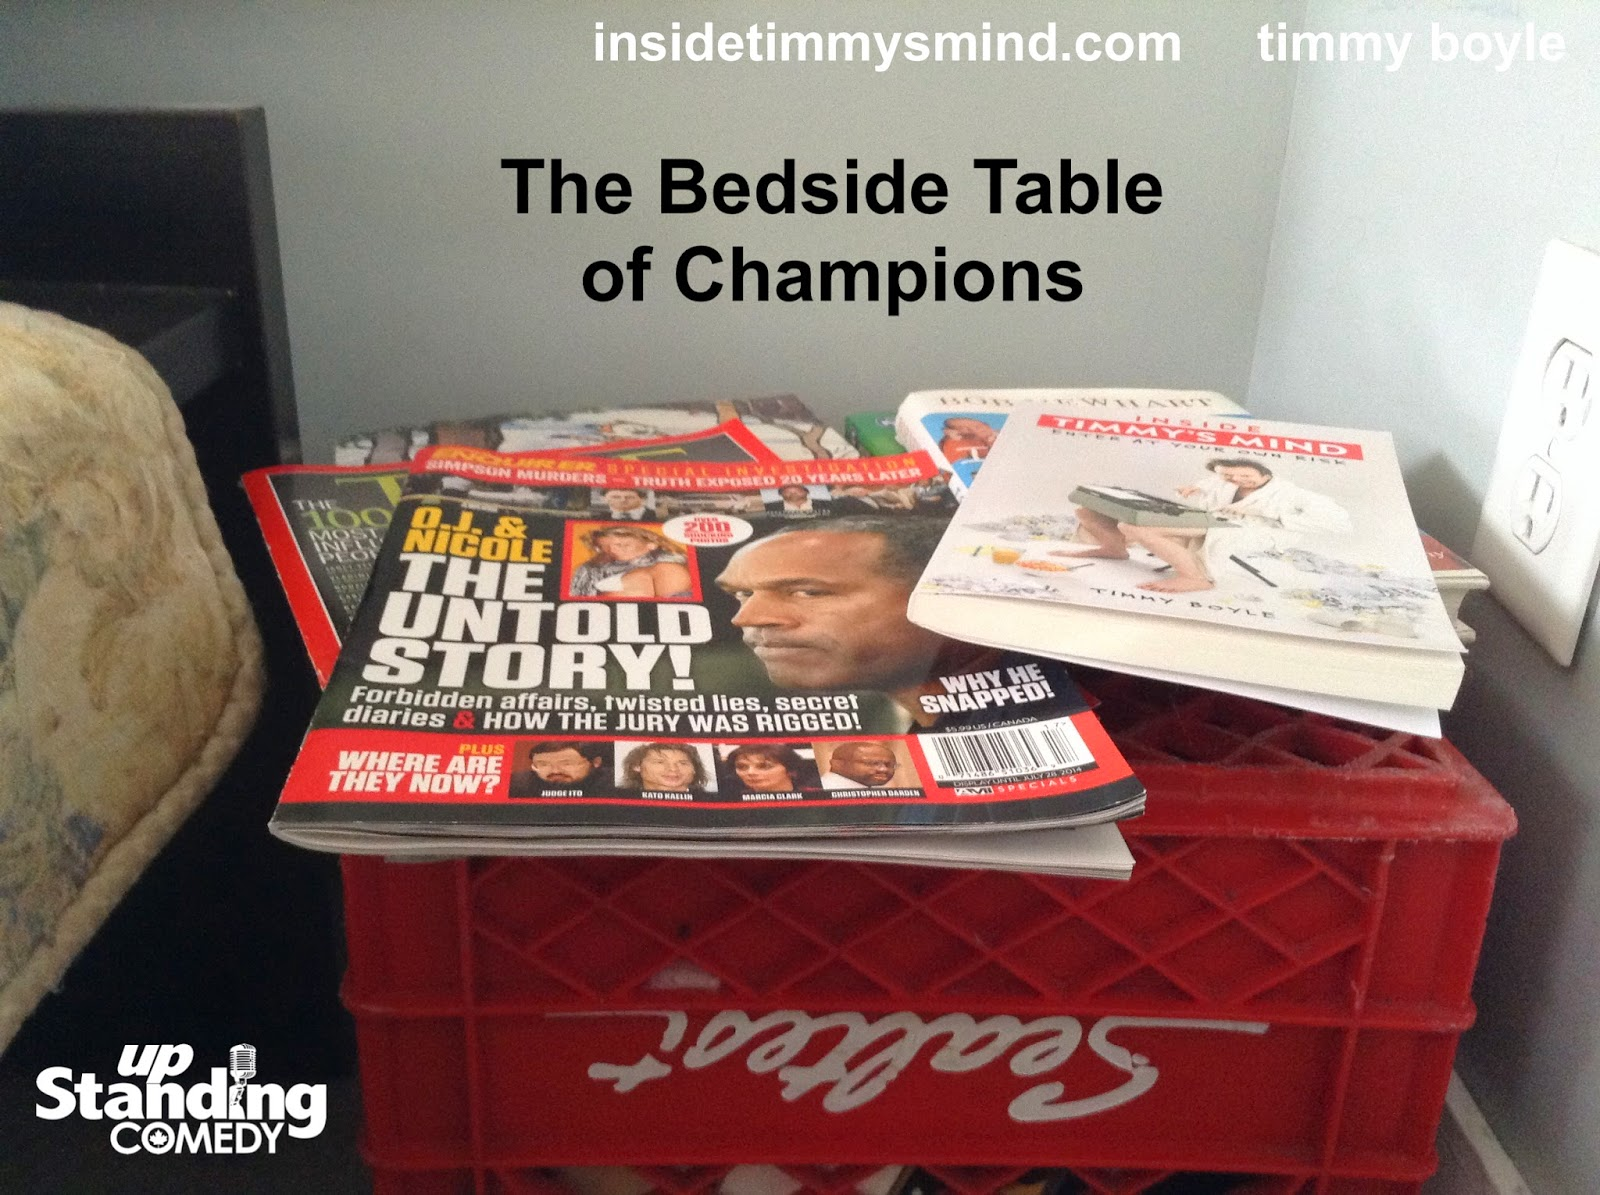 Inside Timmy's Mind - The Bedside Table of Champions (a Sealtest Milk Crate)